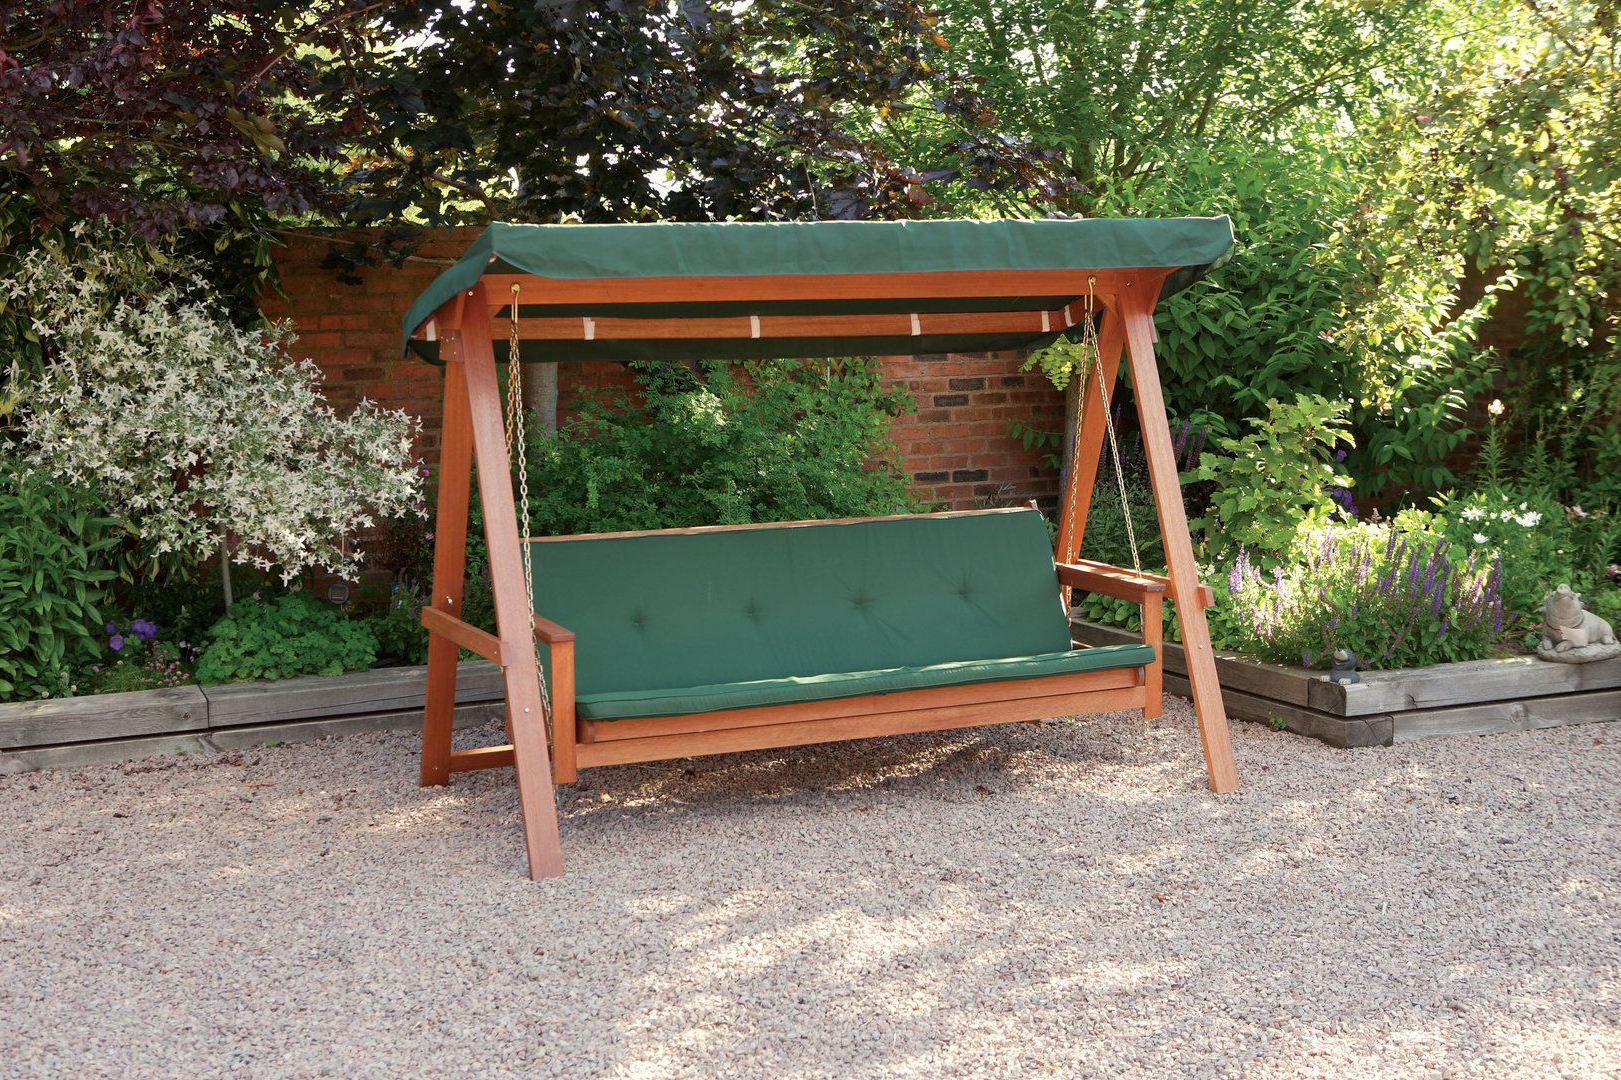 3 Seat Pergola Swings Pertaining To Most Recent Quality Wooden Swing Bed 3 Seater Garden Swing Seat With (View 4 of 25)